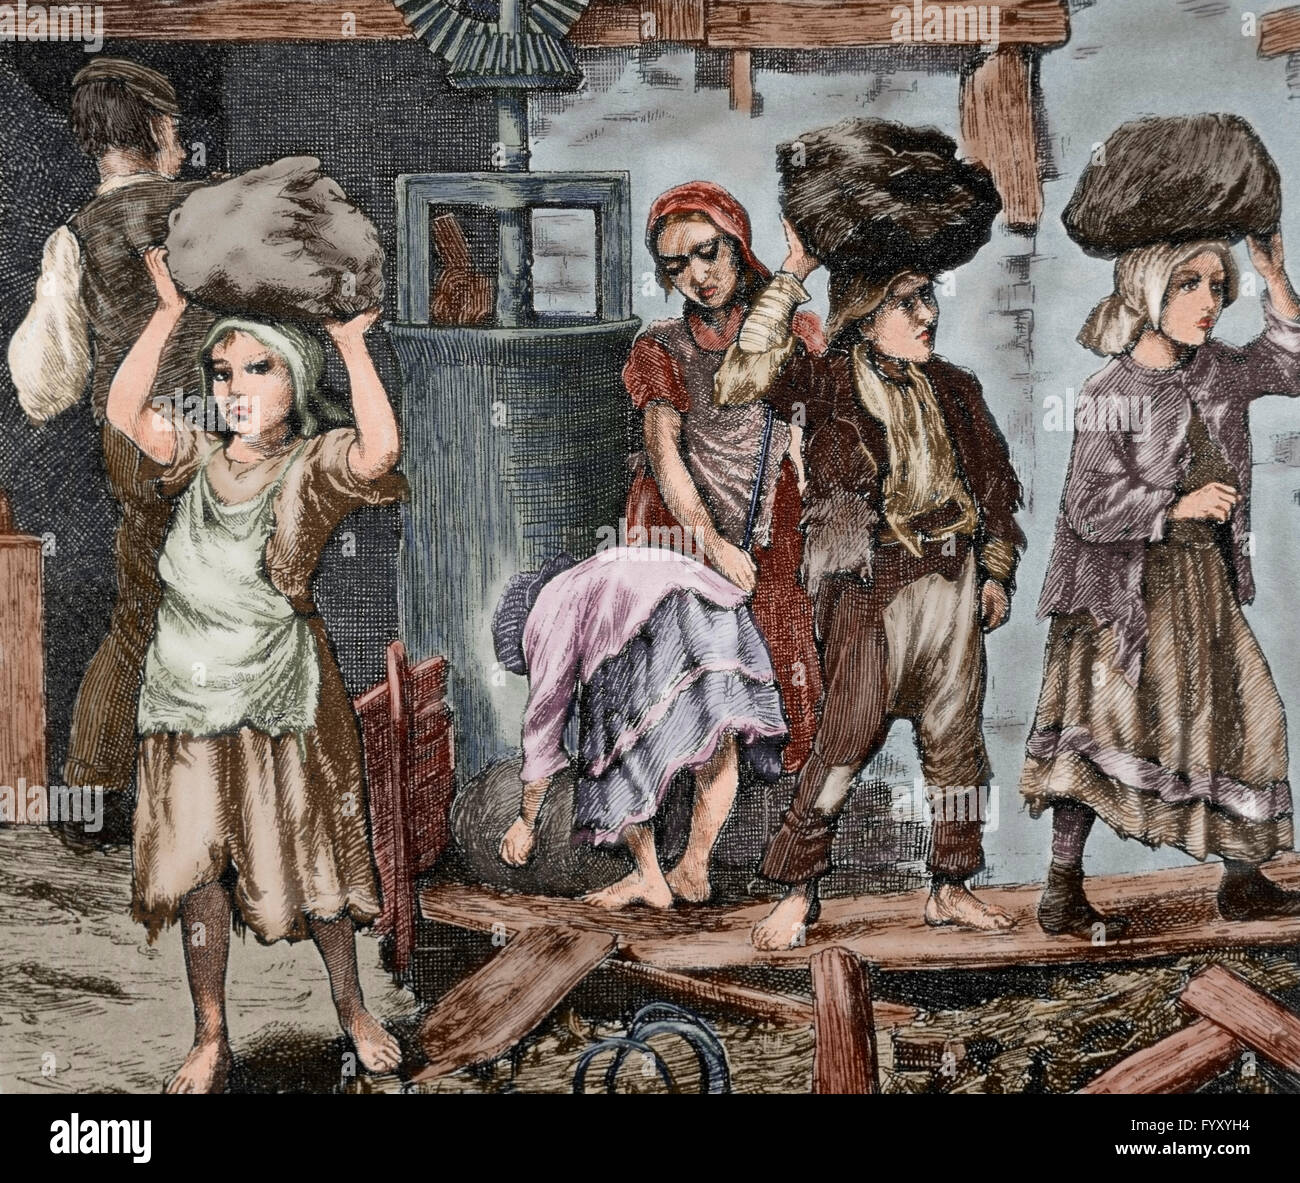 Children working in an industry. Early 19th century. Engraving. Colored. - Stock Image